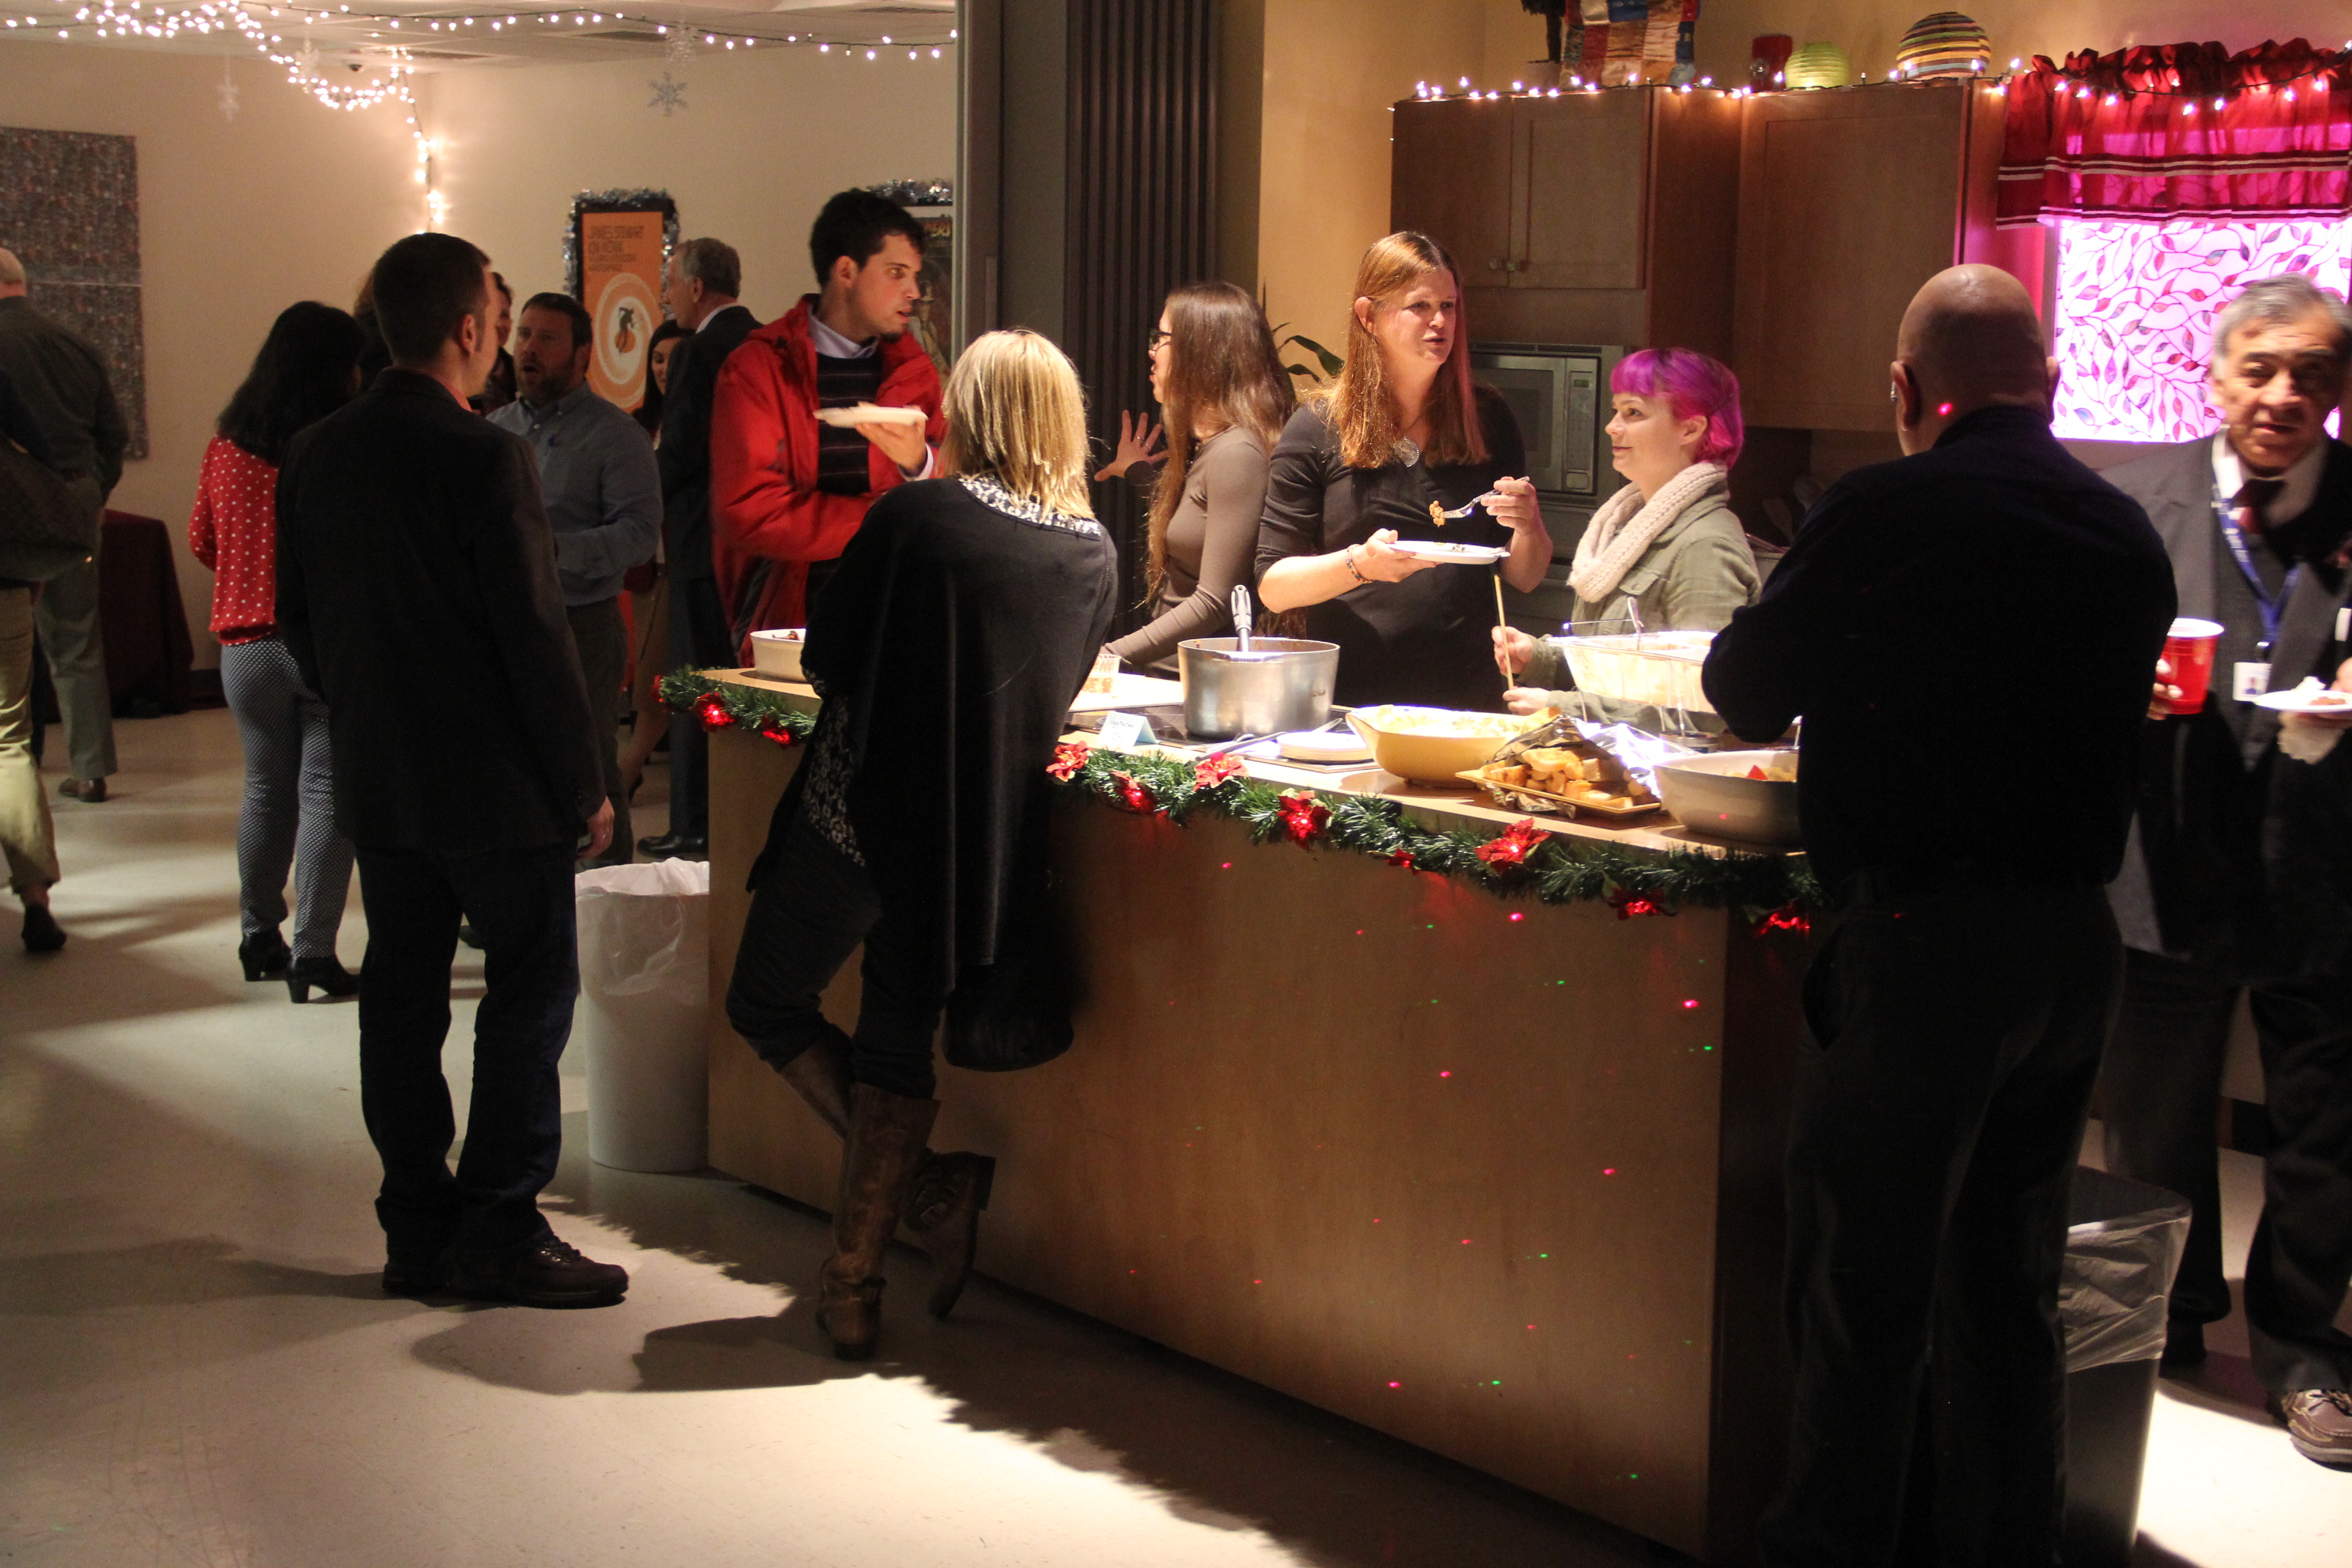 ActonTV's Annual Meeting and Holiday Party